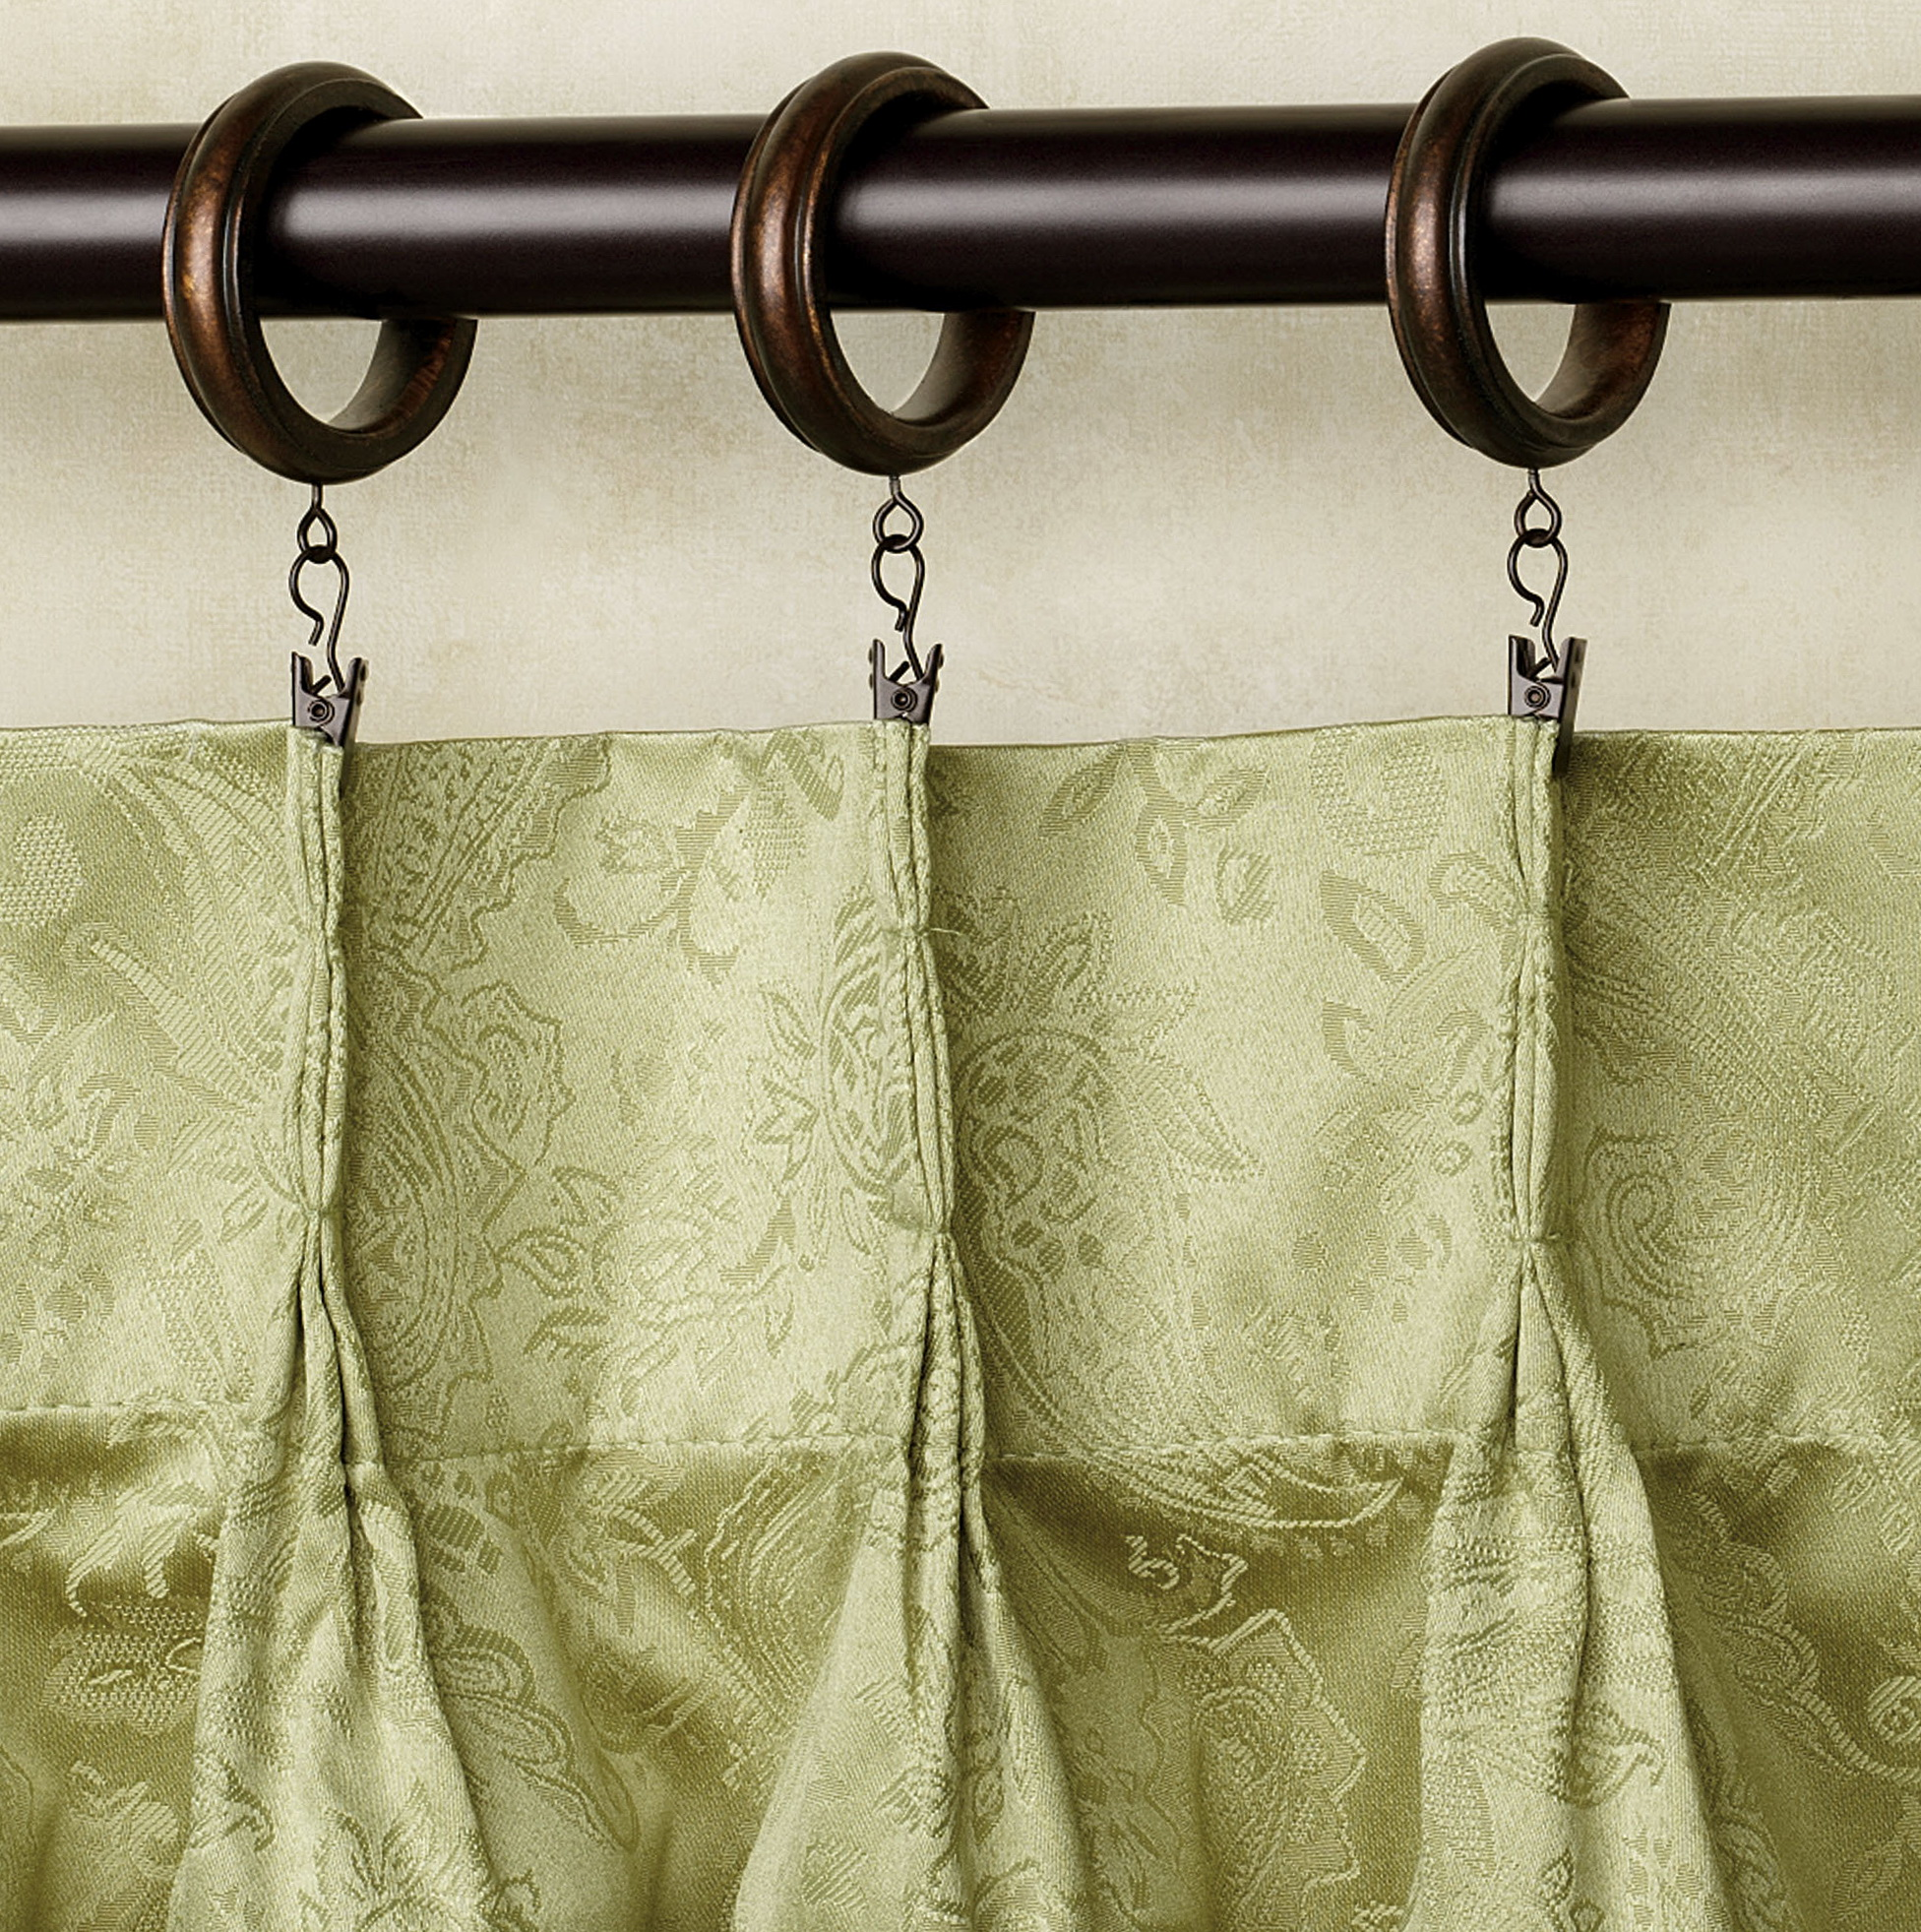 itm rail set pole curtain double wooden poles clips bracket rings classic curtains